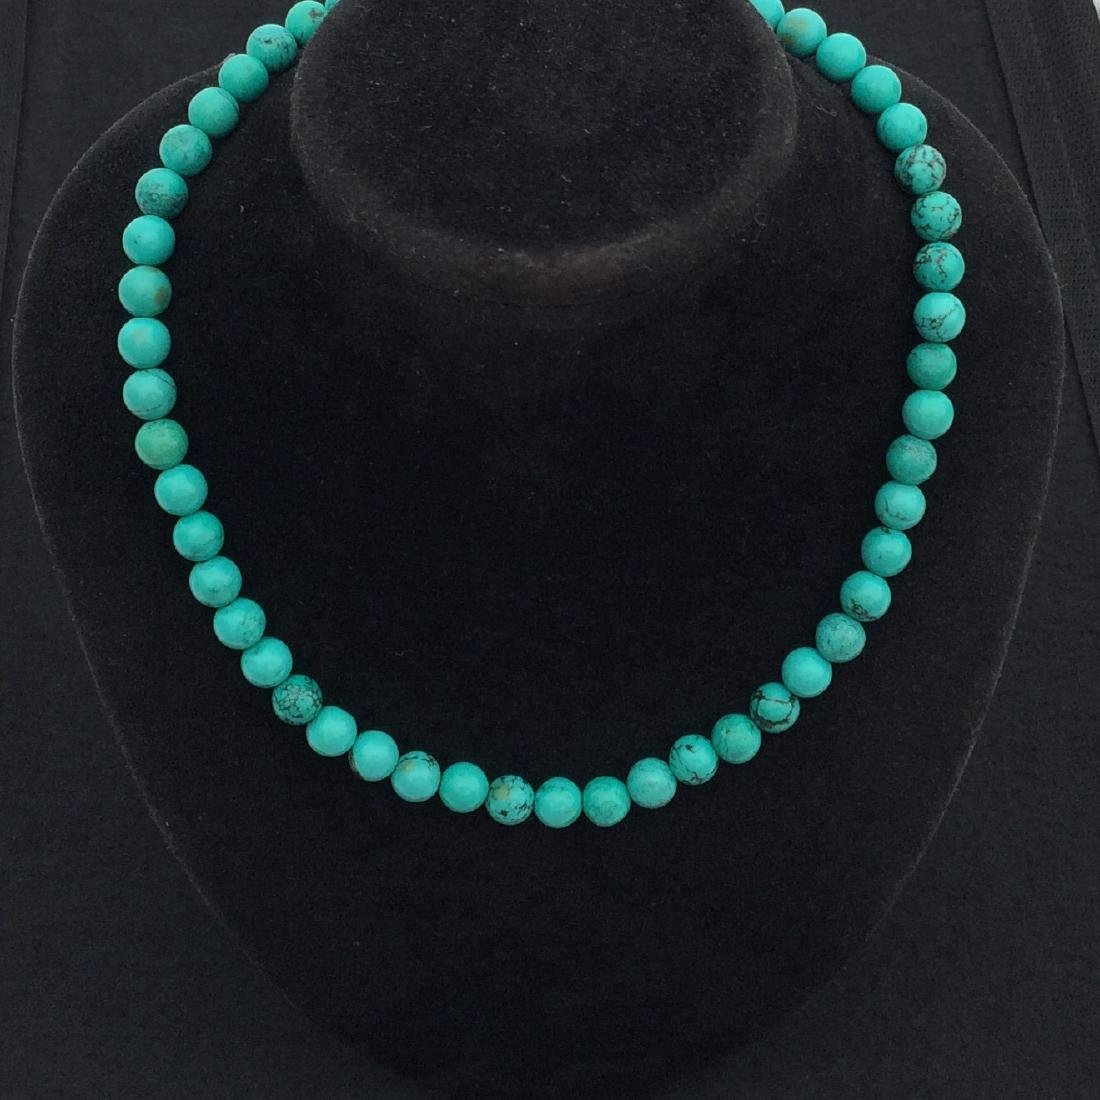 Chinese Old Turquoise Necklace